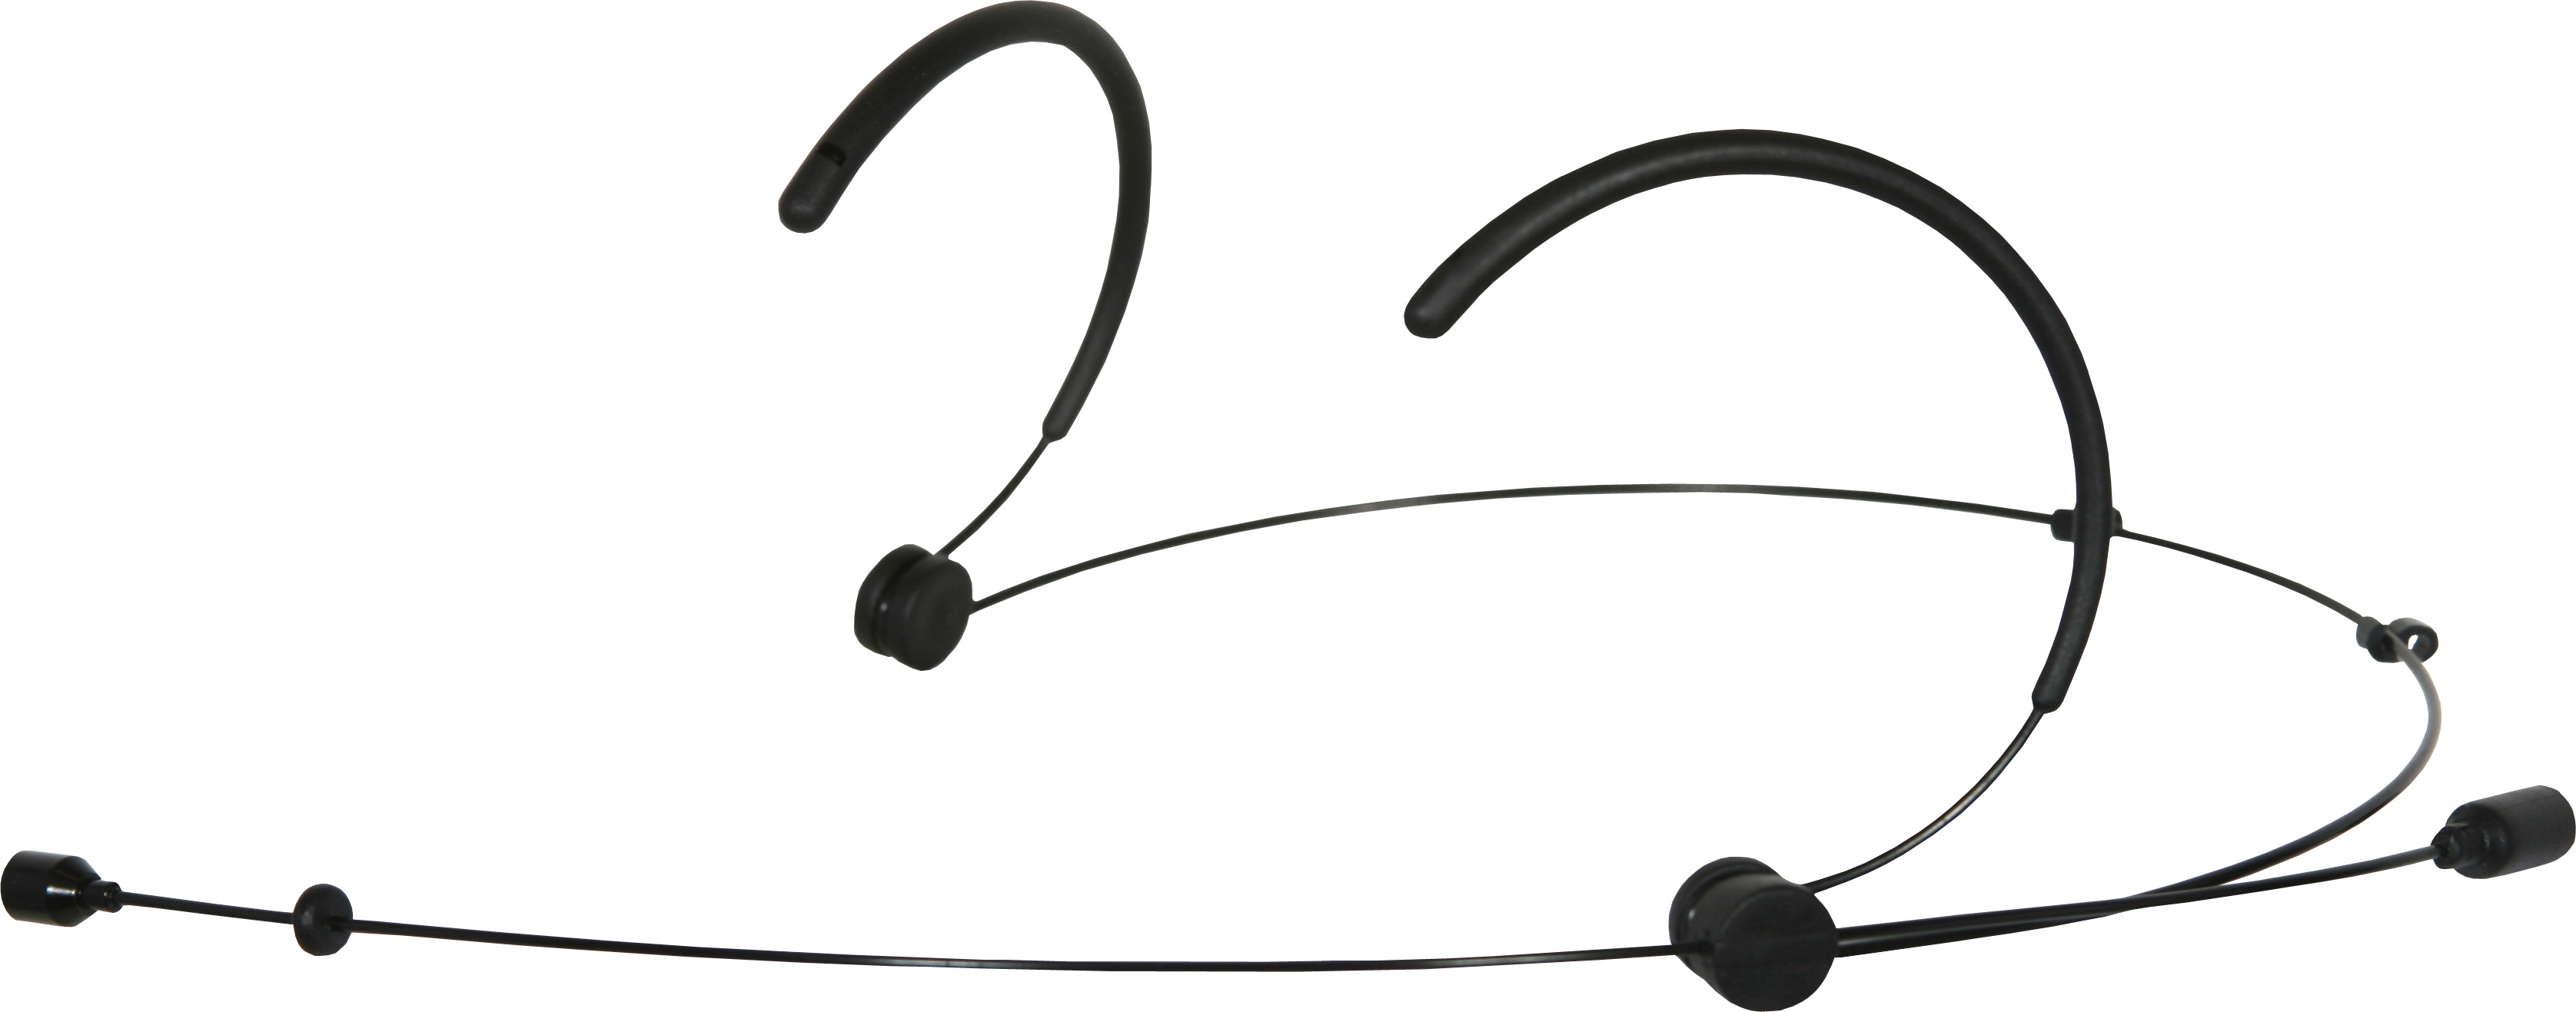 Galaxy Audio Hs3 Obk Sen Black Lightweight Omni Headset